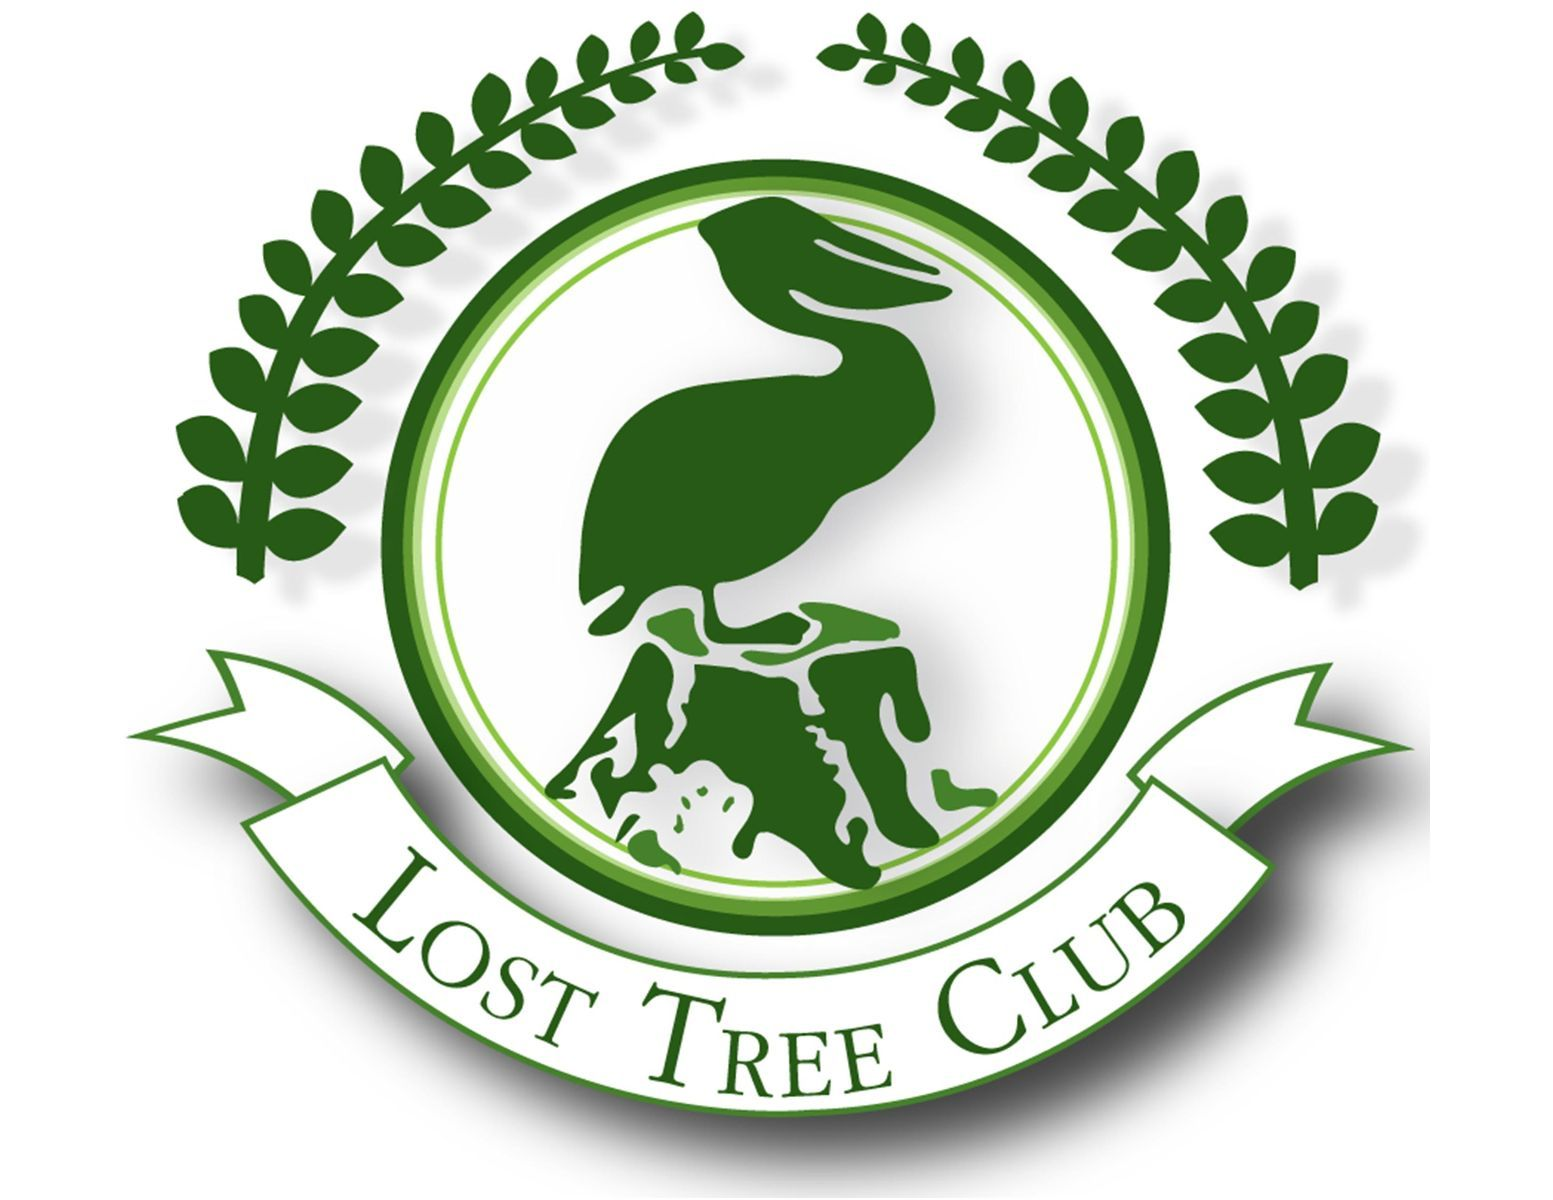 Lost Tree Club in Palm Beach Gardens, Florida. Homes in